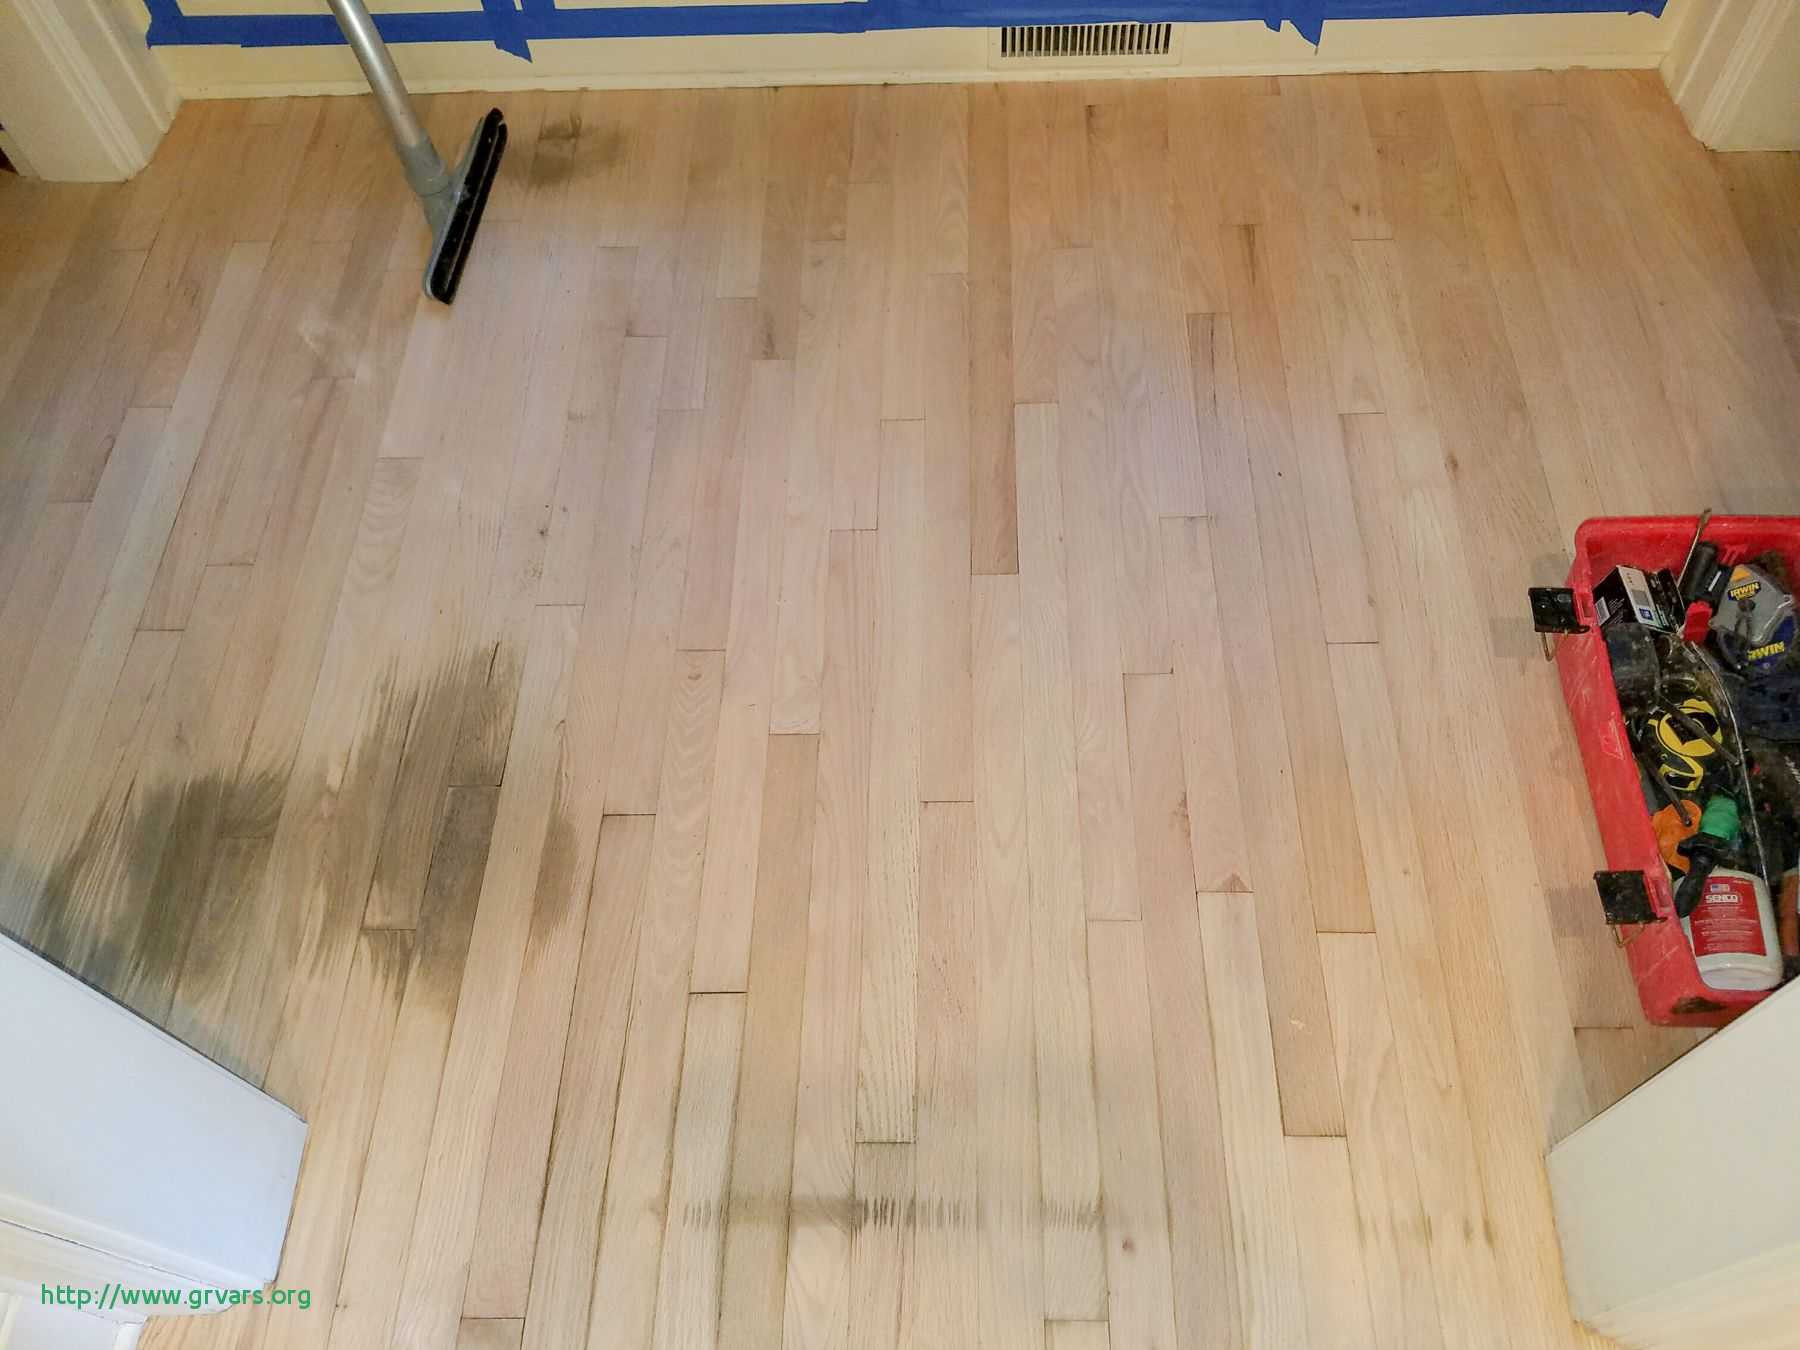 how to dry hardwood floor water damage of 15 nouveau how to fix wood floors from water damage ideas blog throughout how to fix wood floors from water damage a‰lagant inspirational how to repair laminate flooring water